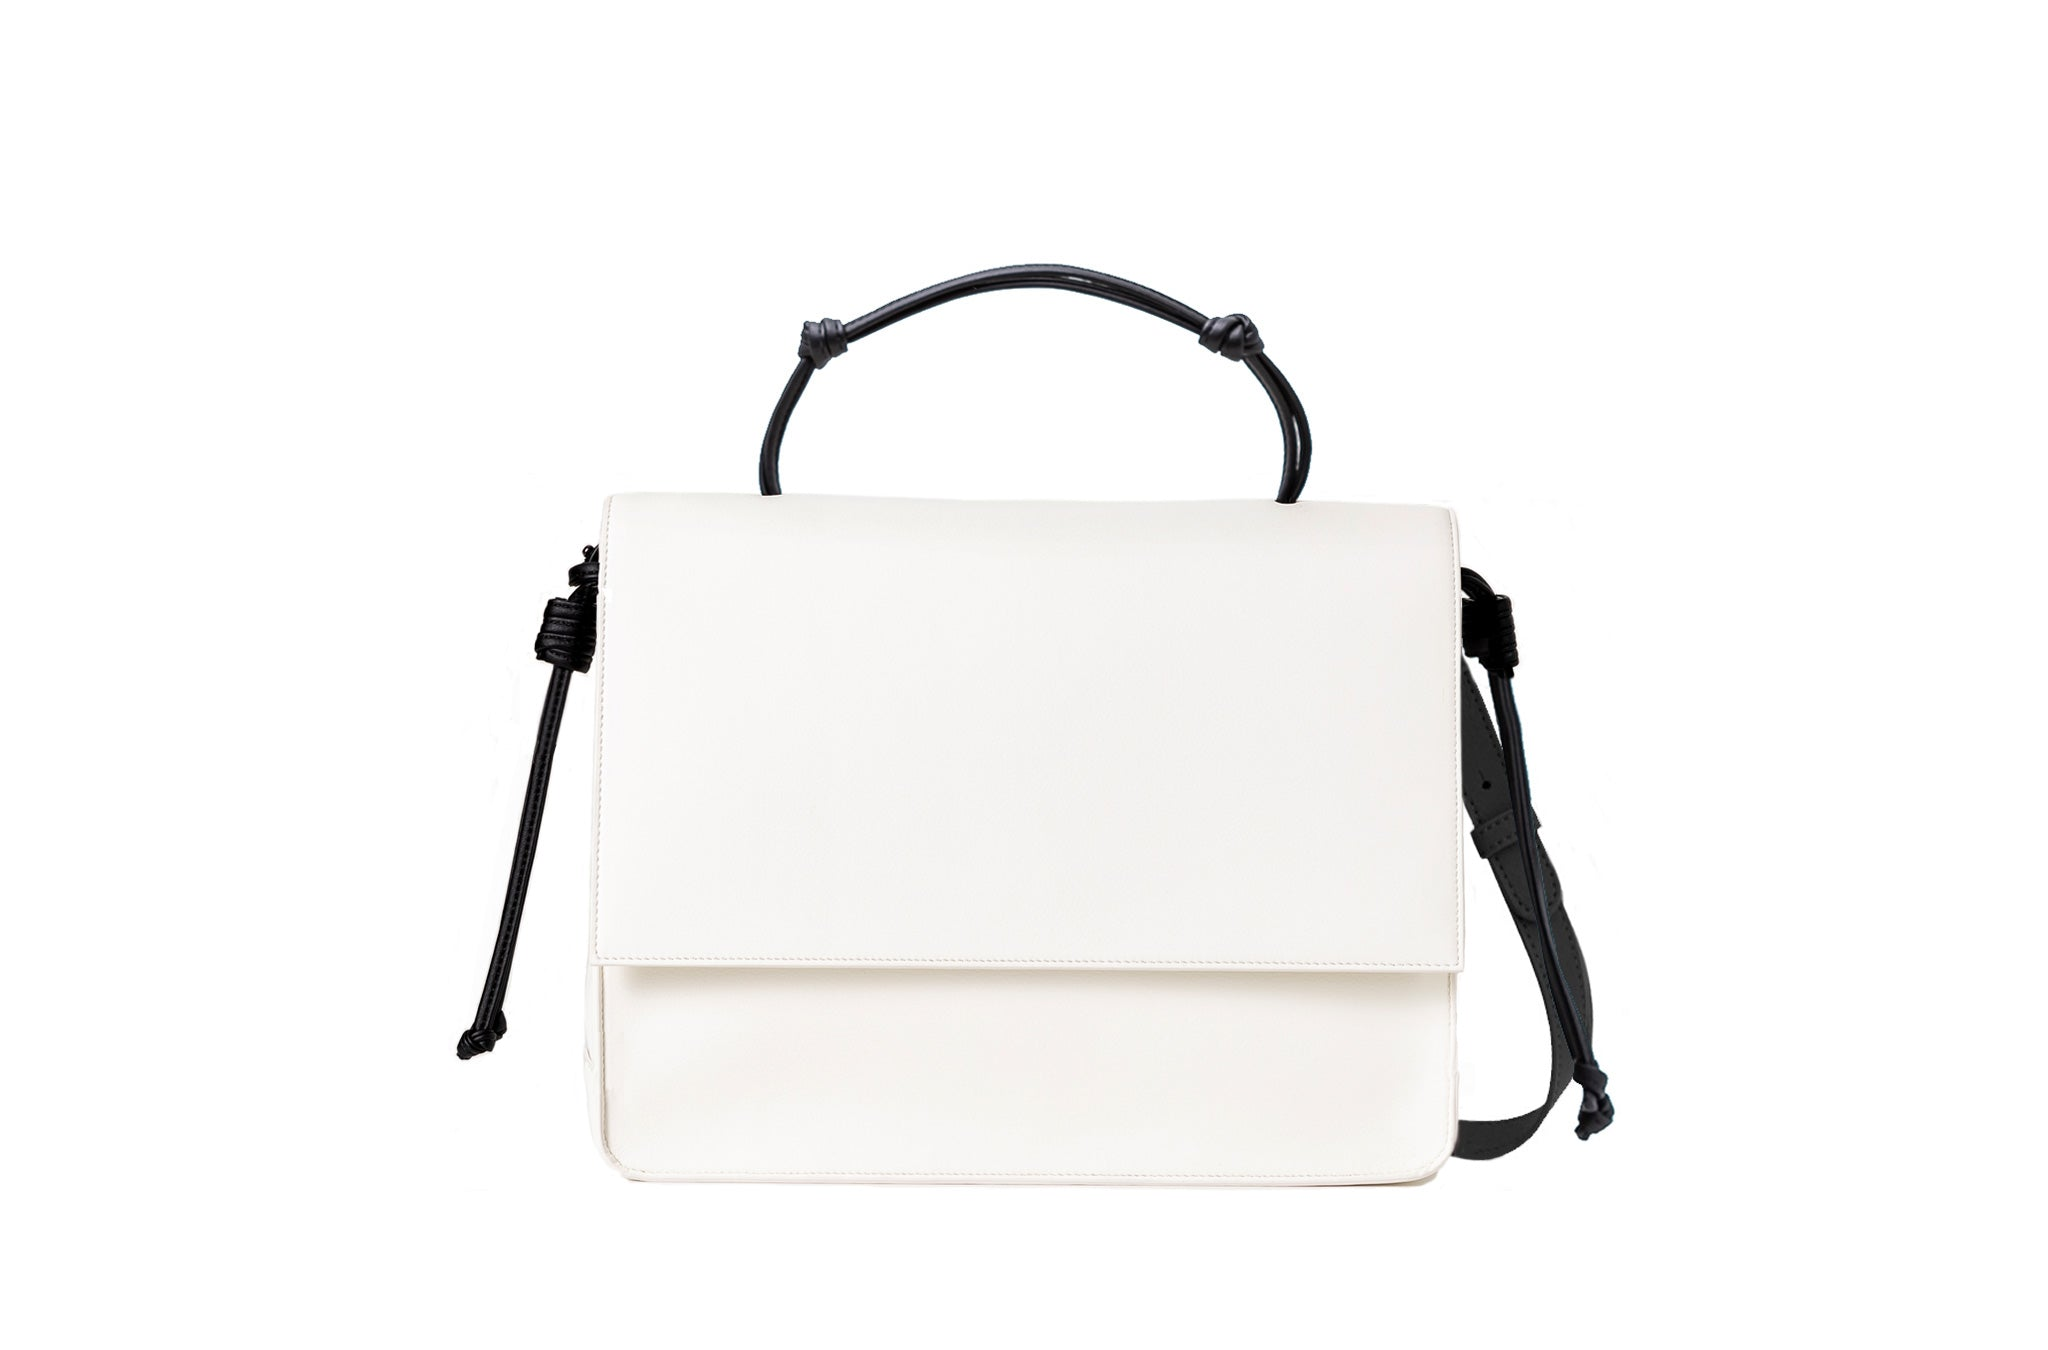 The Handheld in Technik-Leather in White and Black